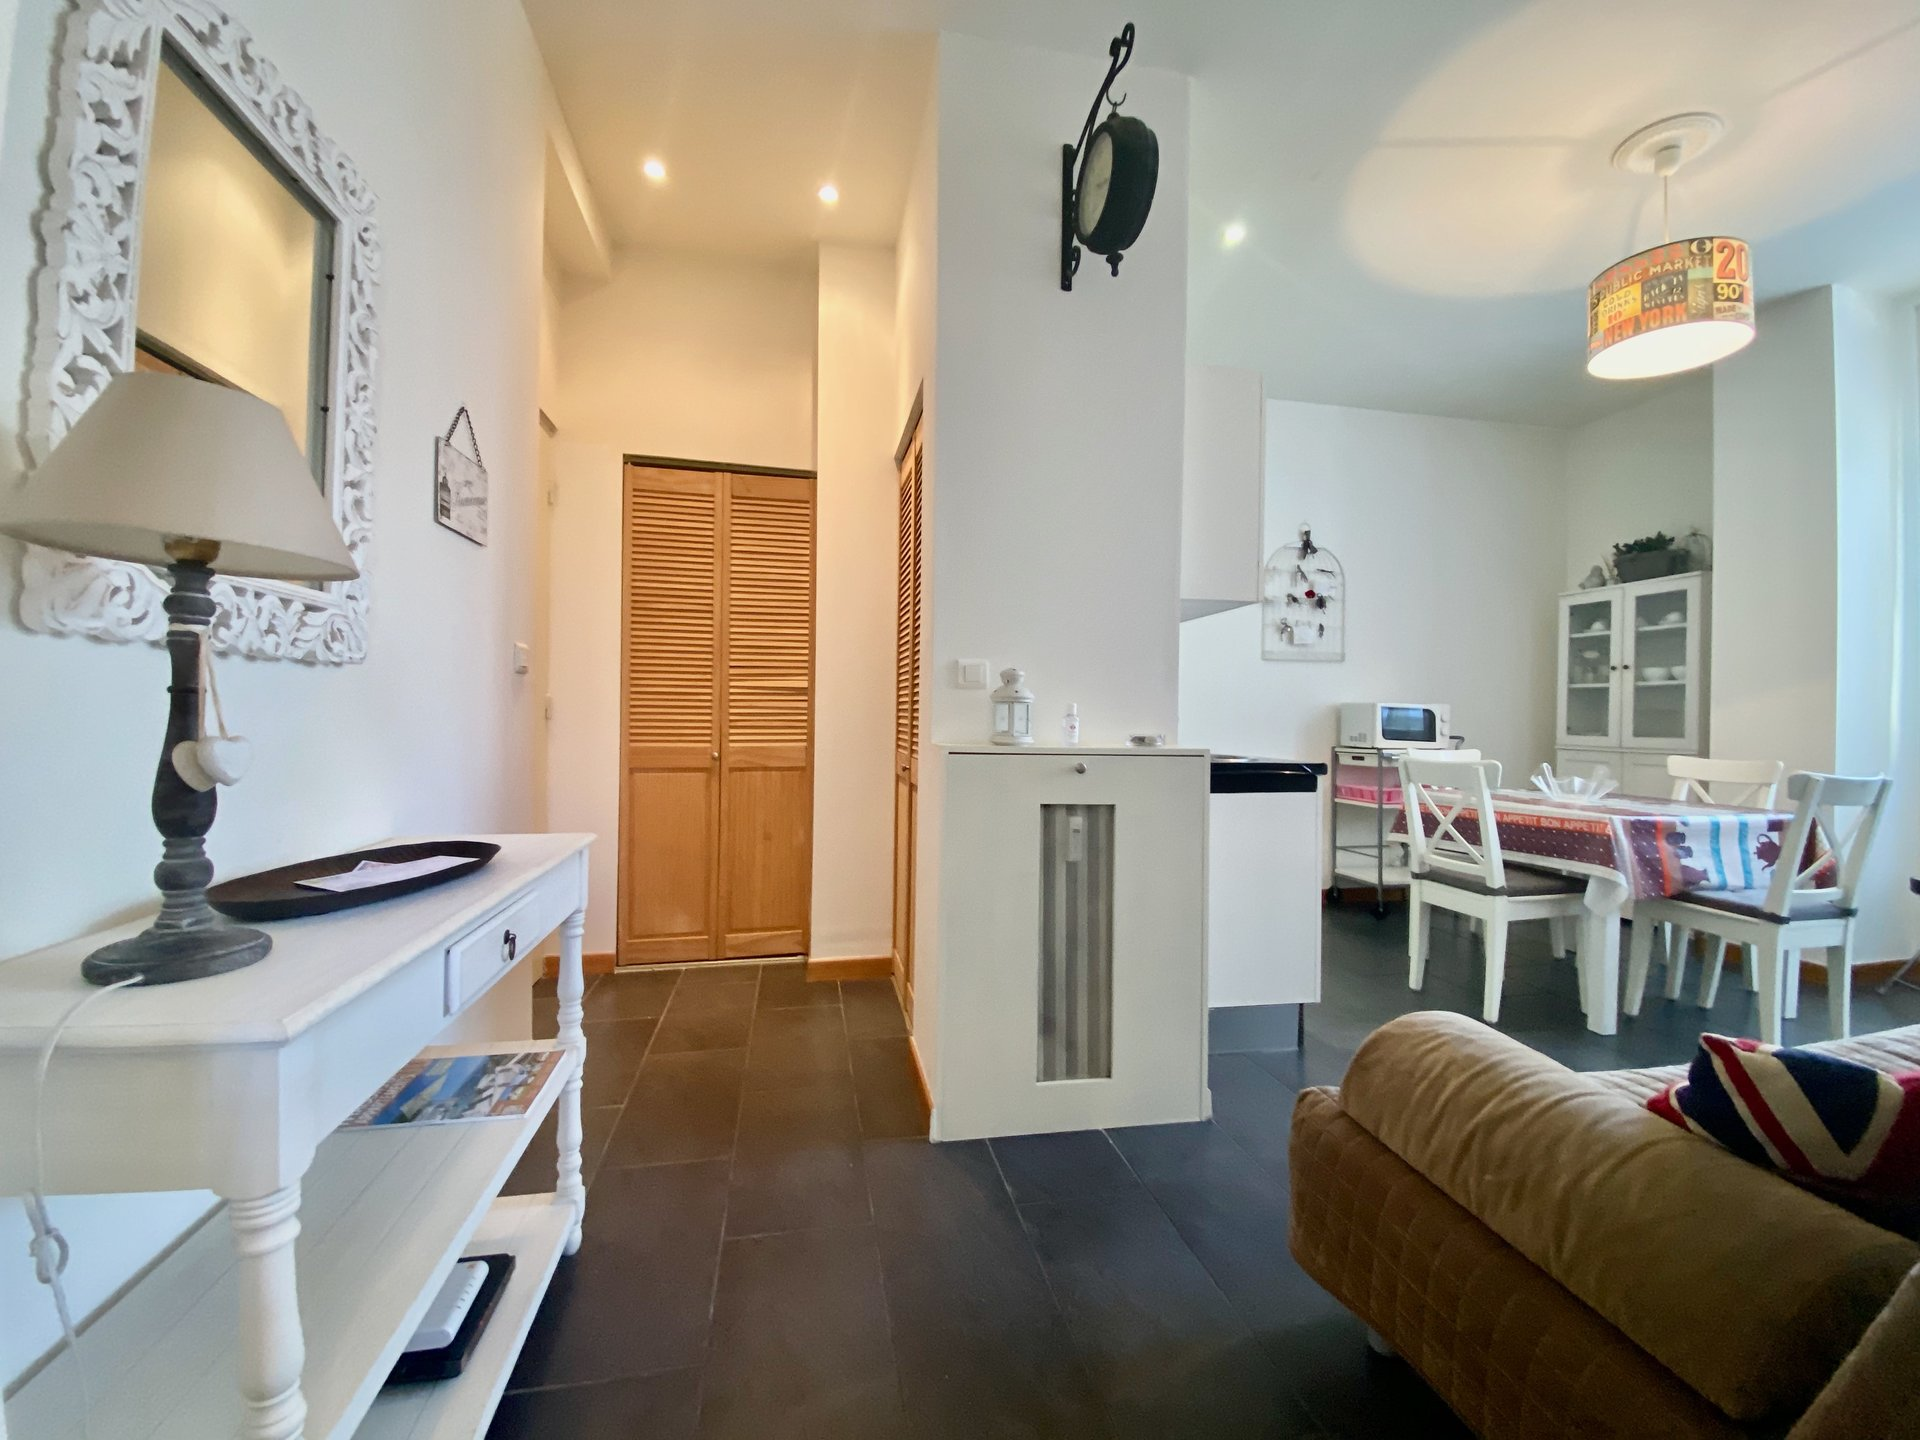 Nice Carré d'or - Beautifull one bedroom renovated